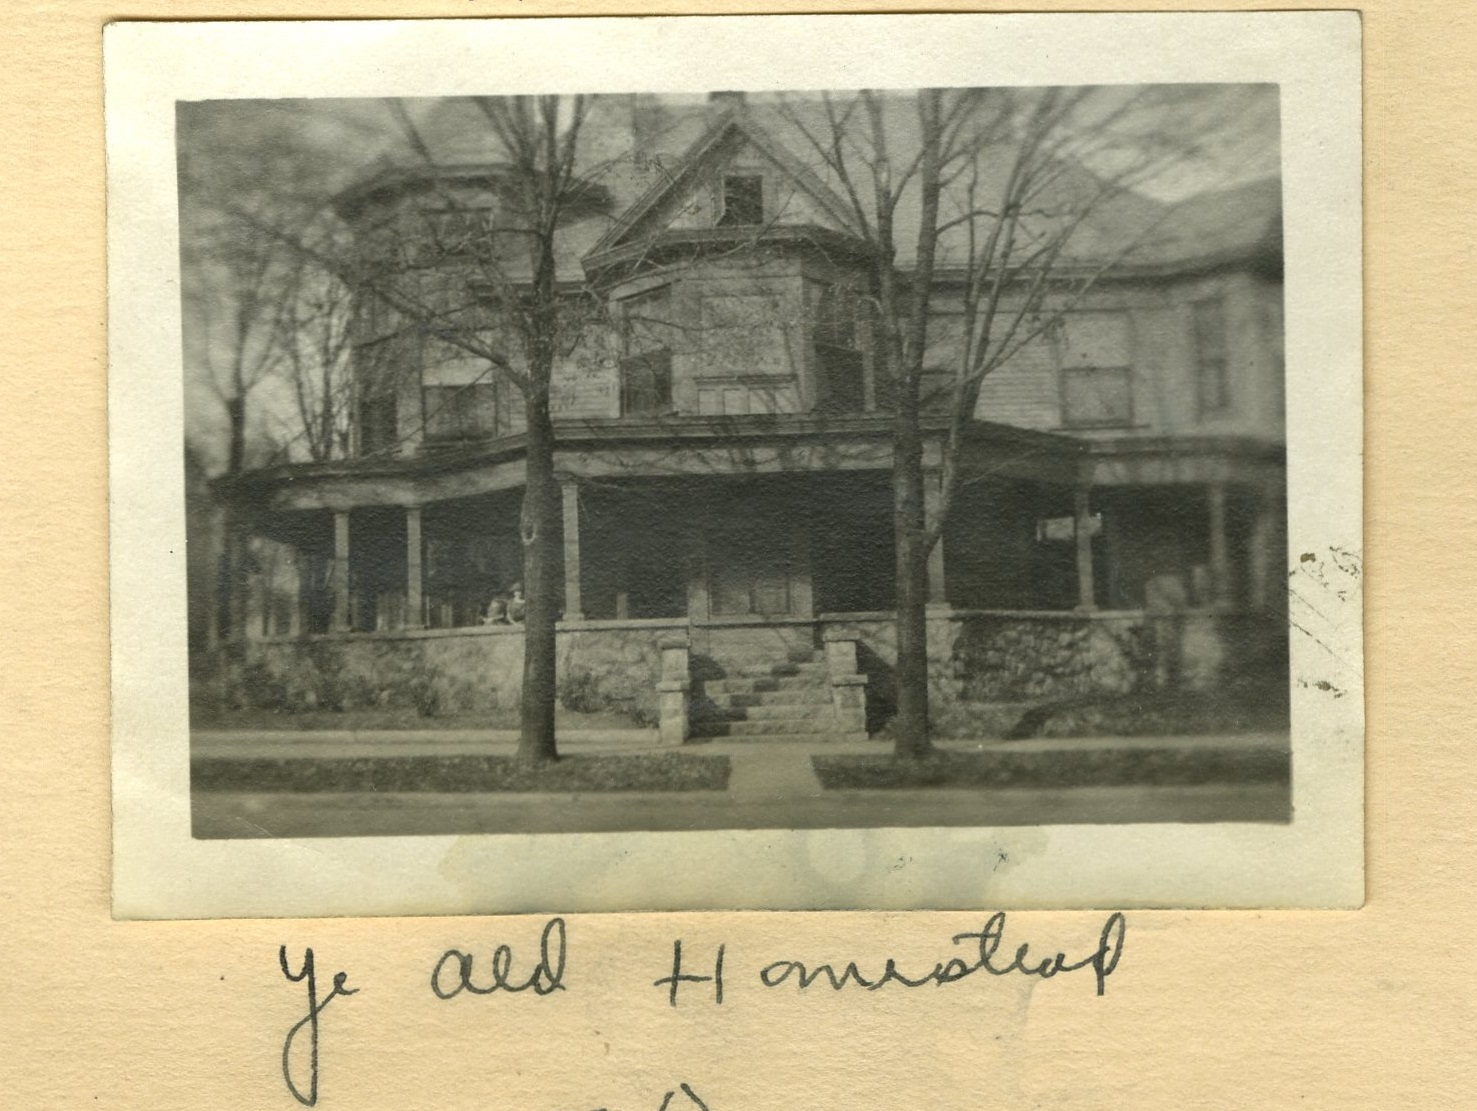 The Kirkwood House, ca. 1920s, from Geraldine s scrapbook b56e6a43eac3